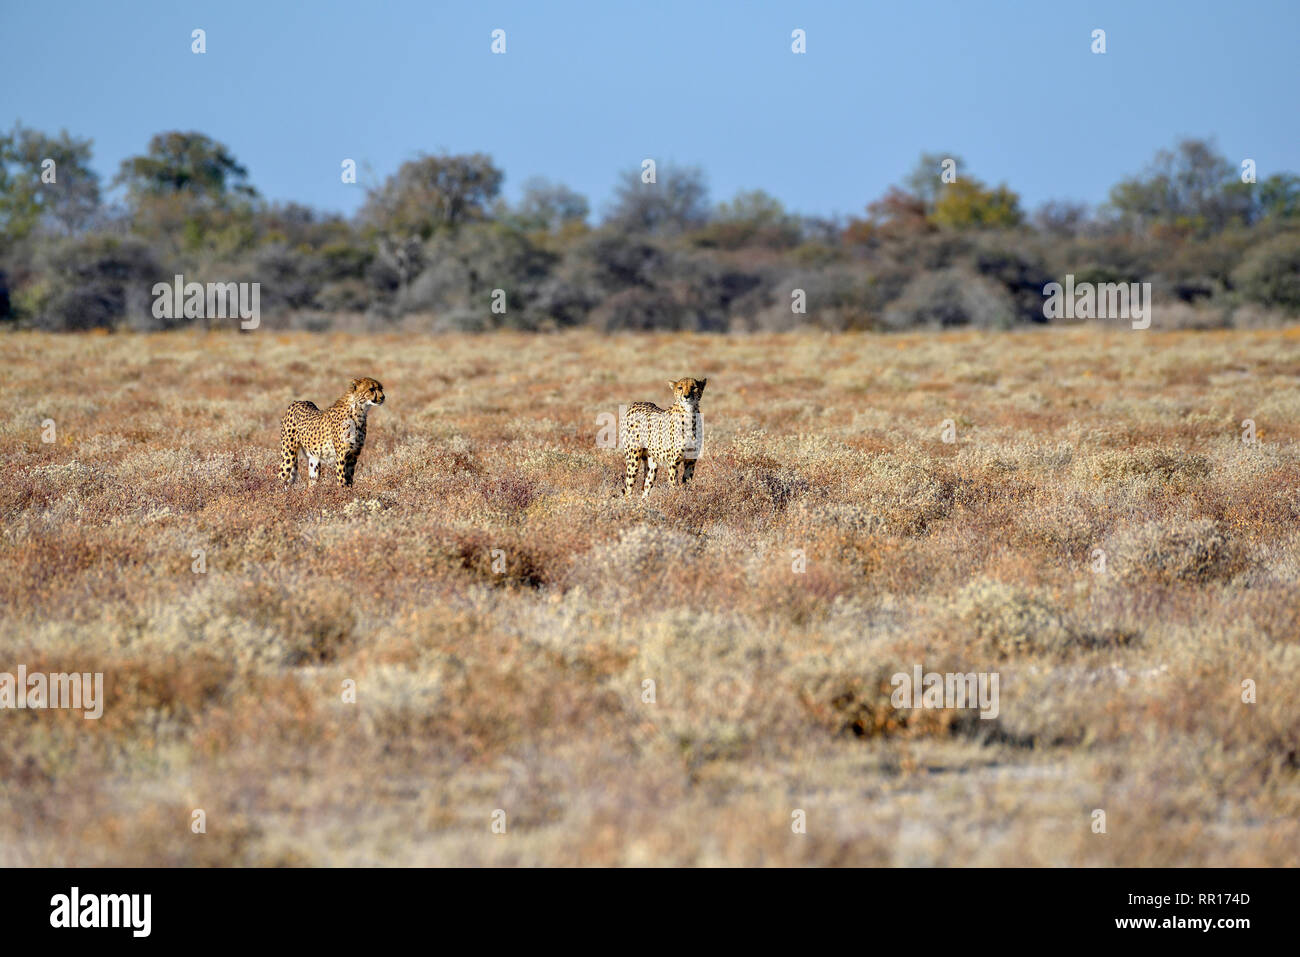 zoology, mammal (mammalia), two cheetahs (Acinonyx jubatus), masculine animals, by Namutoni, Etosha Na, Additional-Rights-Clearance-Info-Not-Available - Stock Image